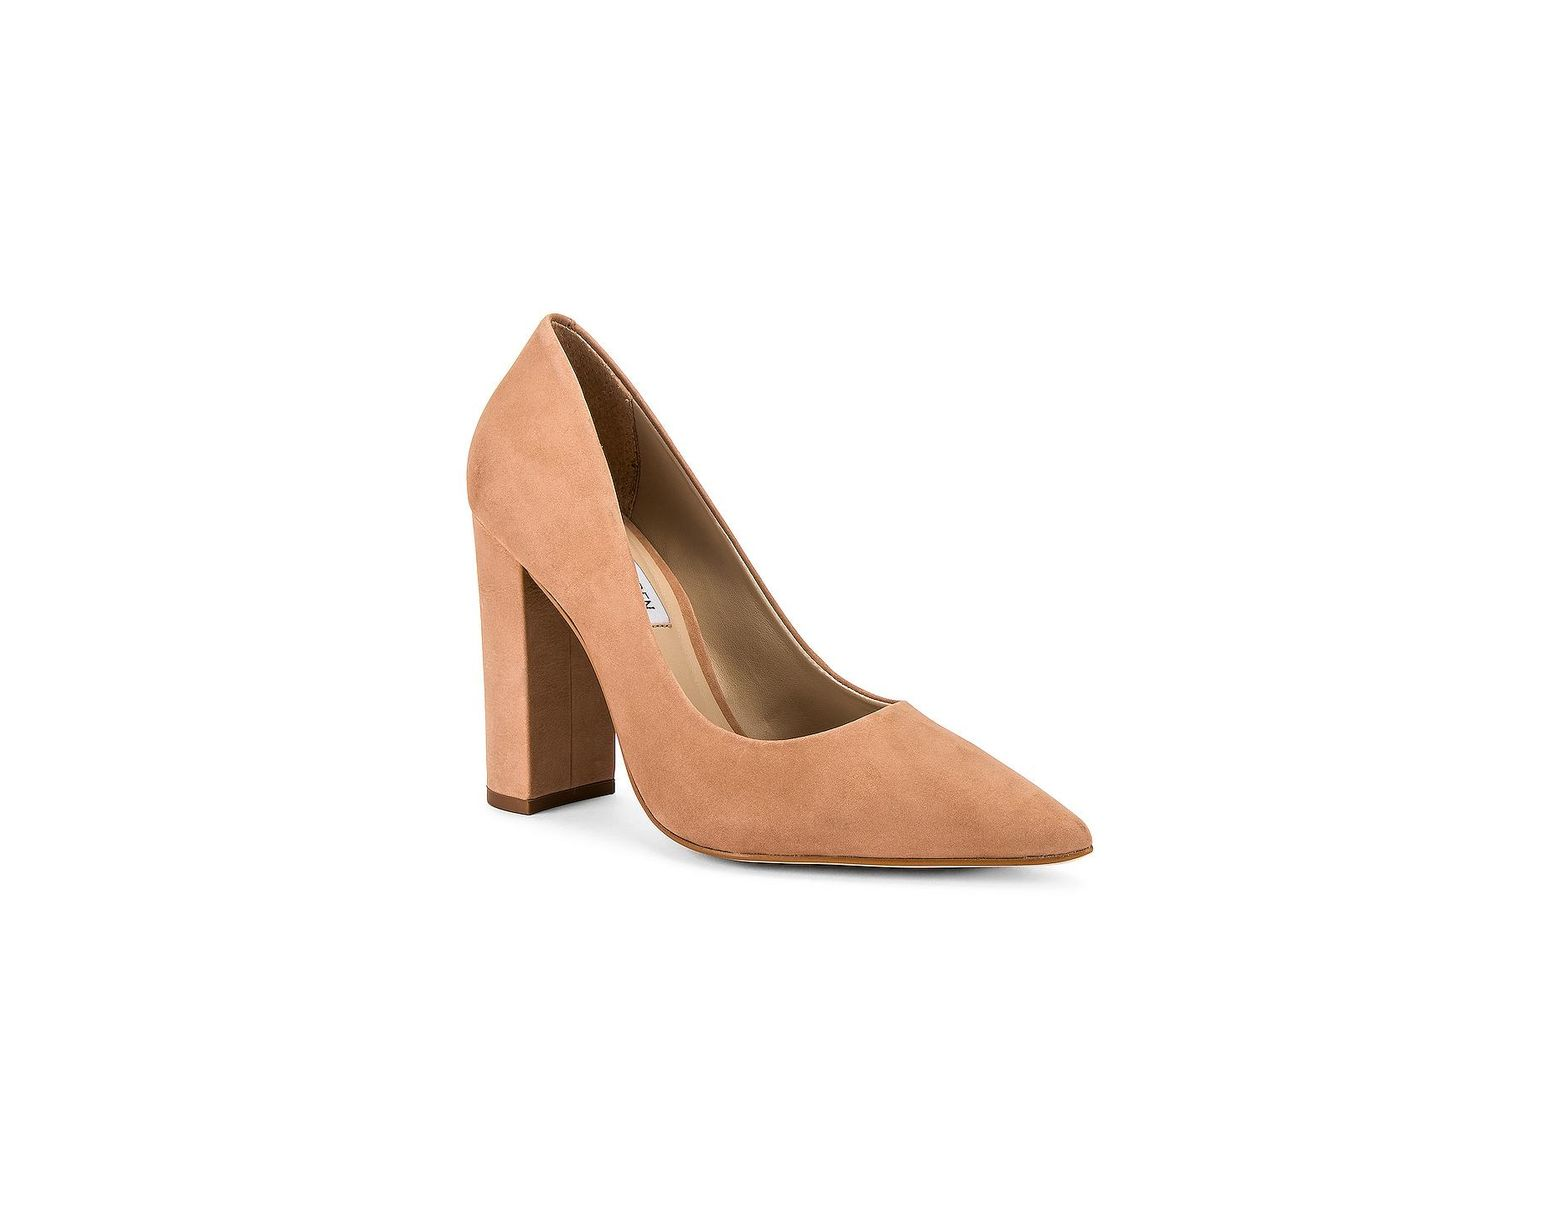 ee3bc3912a Steve Madden Pump in Natural - Save 71% - Lyst